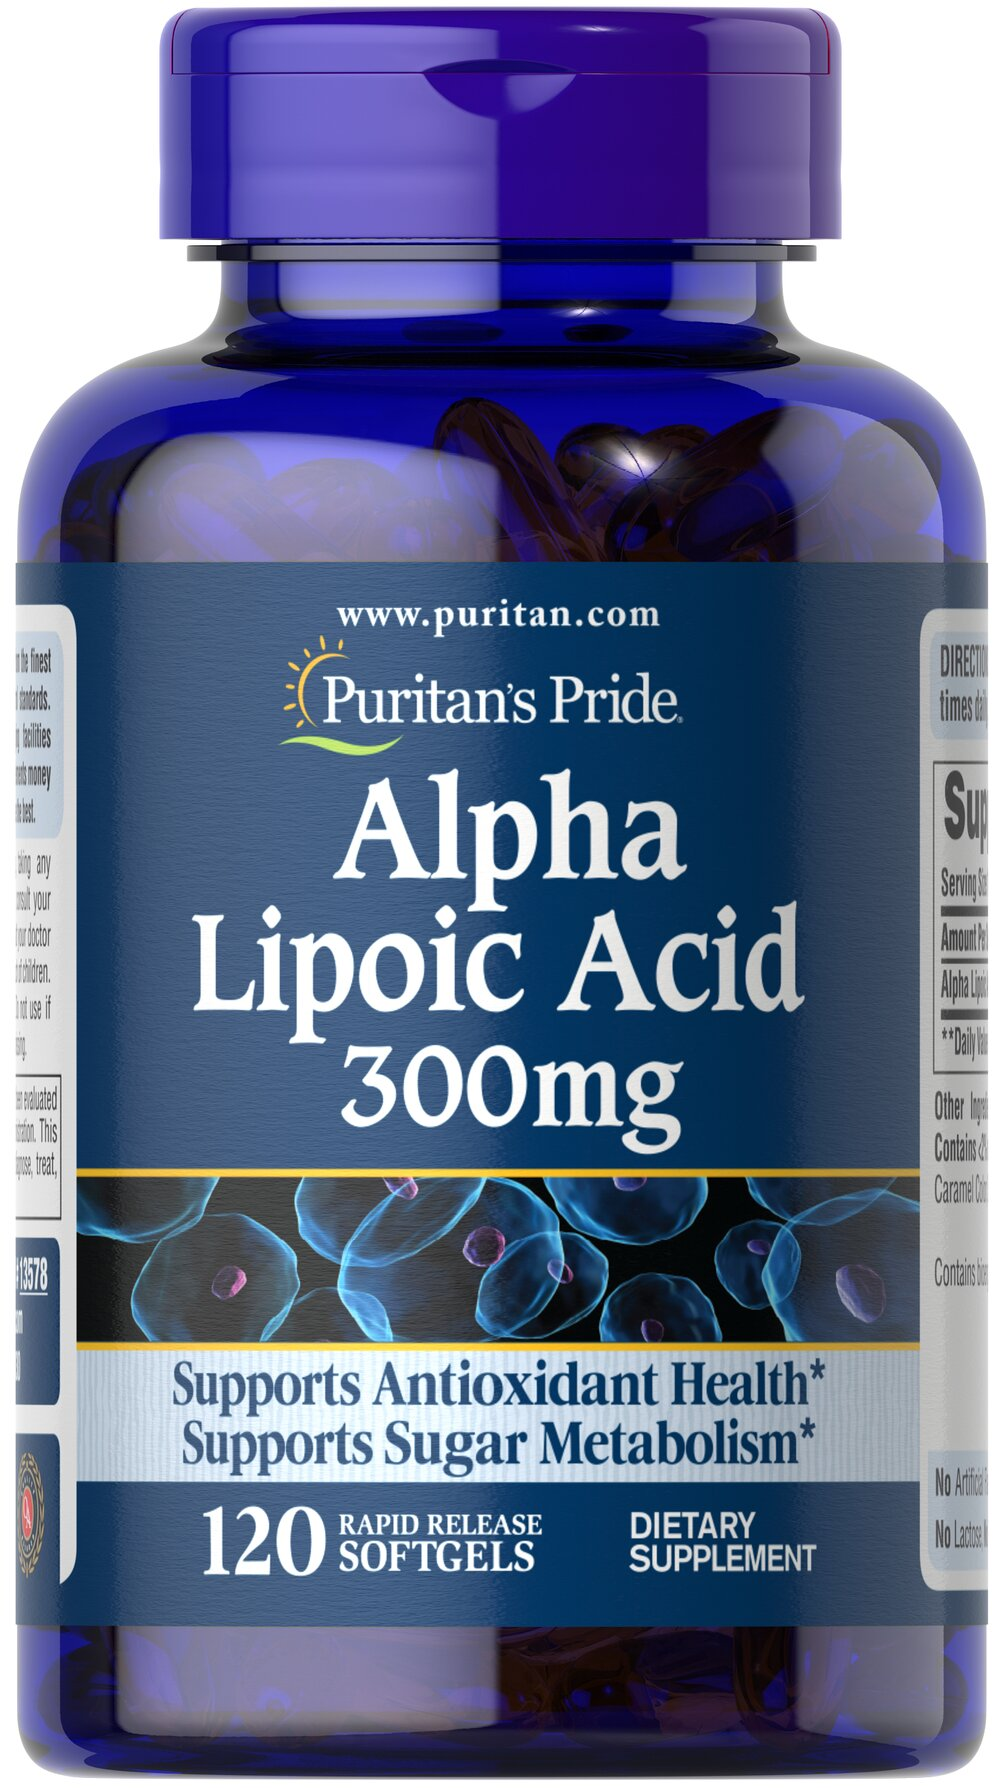 "Alpha Lipoic Acid 300 mg <p>Alpha Lipoic Acid (ALA) helps metabolize sugar, especially in muscles, where it promotes energy.**</p><p>ALA is also beneficial for liver health, and helps to revitalize the underlying structure of the skin so it can look healthier and more radiant.**</p><p> ALA is often called the ""universal antioxidant"" for its ability to help neutralize cell-damaging free radicals.** </p> 120 Softgels 300 mg $26.99"